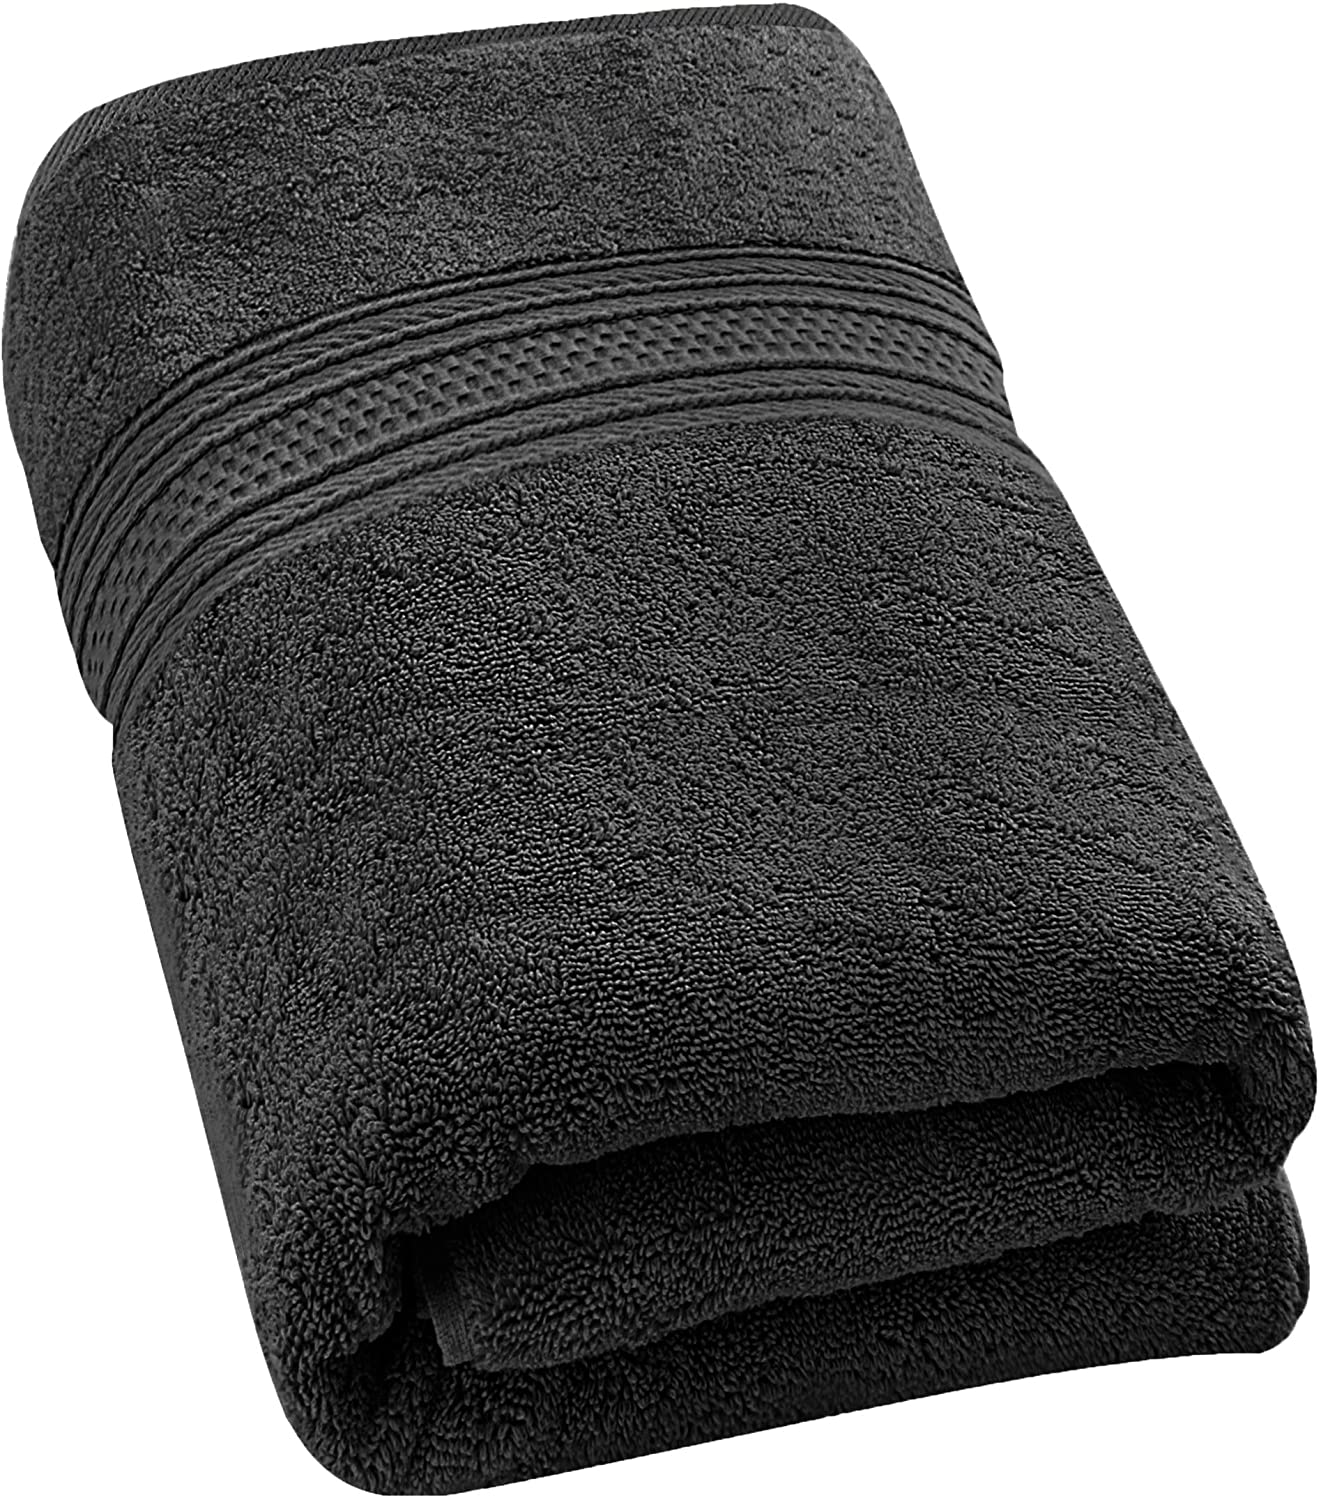 "Extra Large Bath Towel 35x70"" Cotton Luxury Bath Sheet 700"